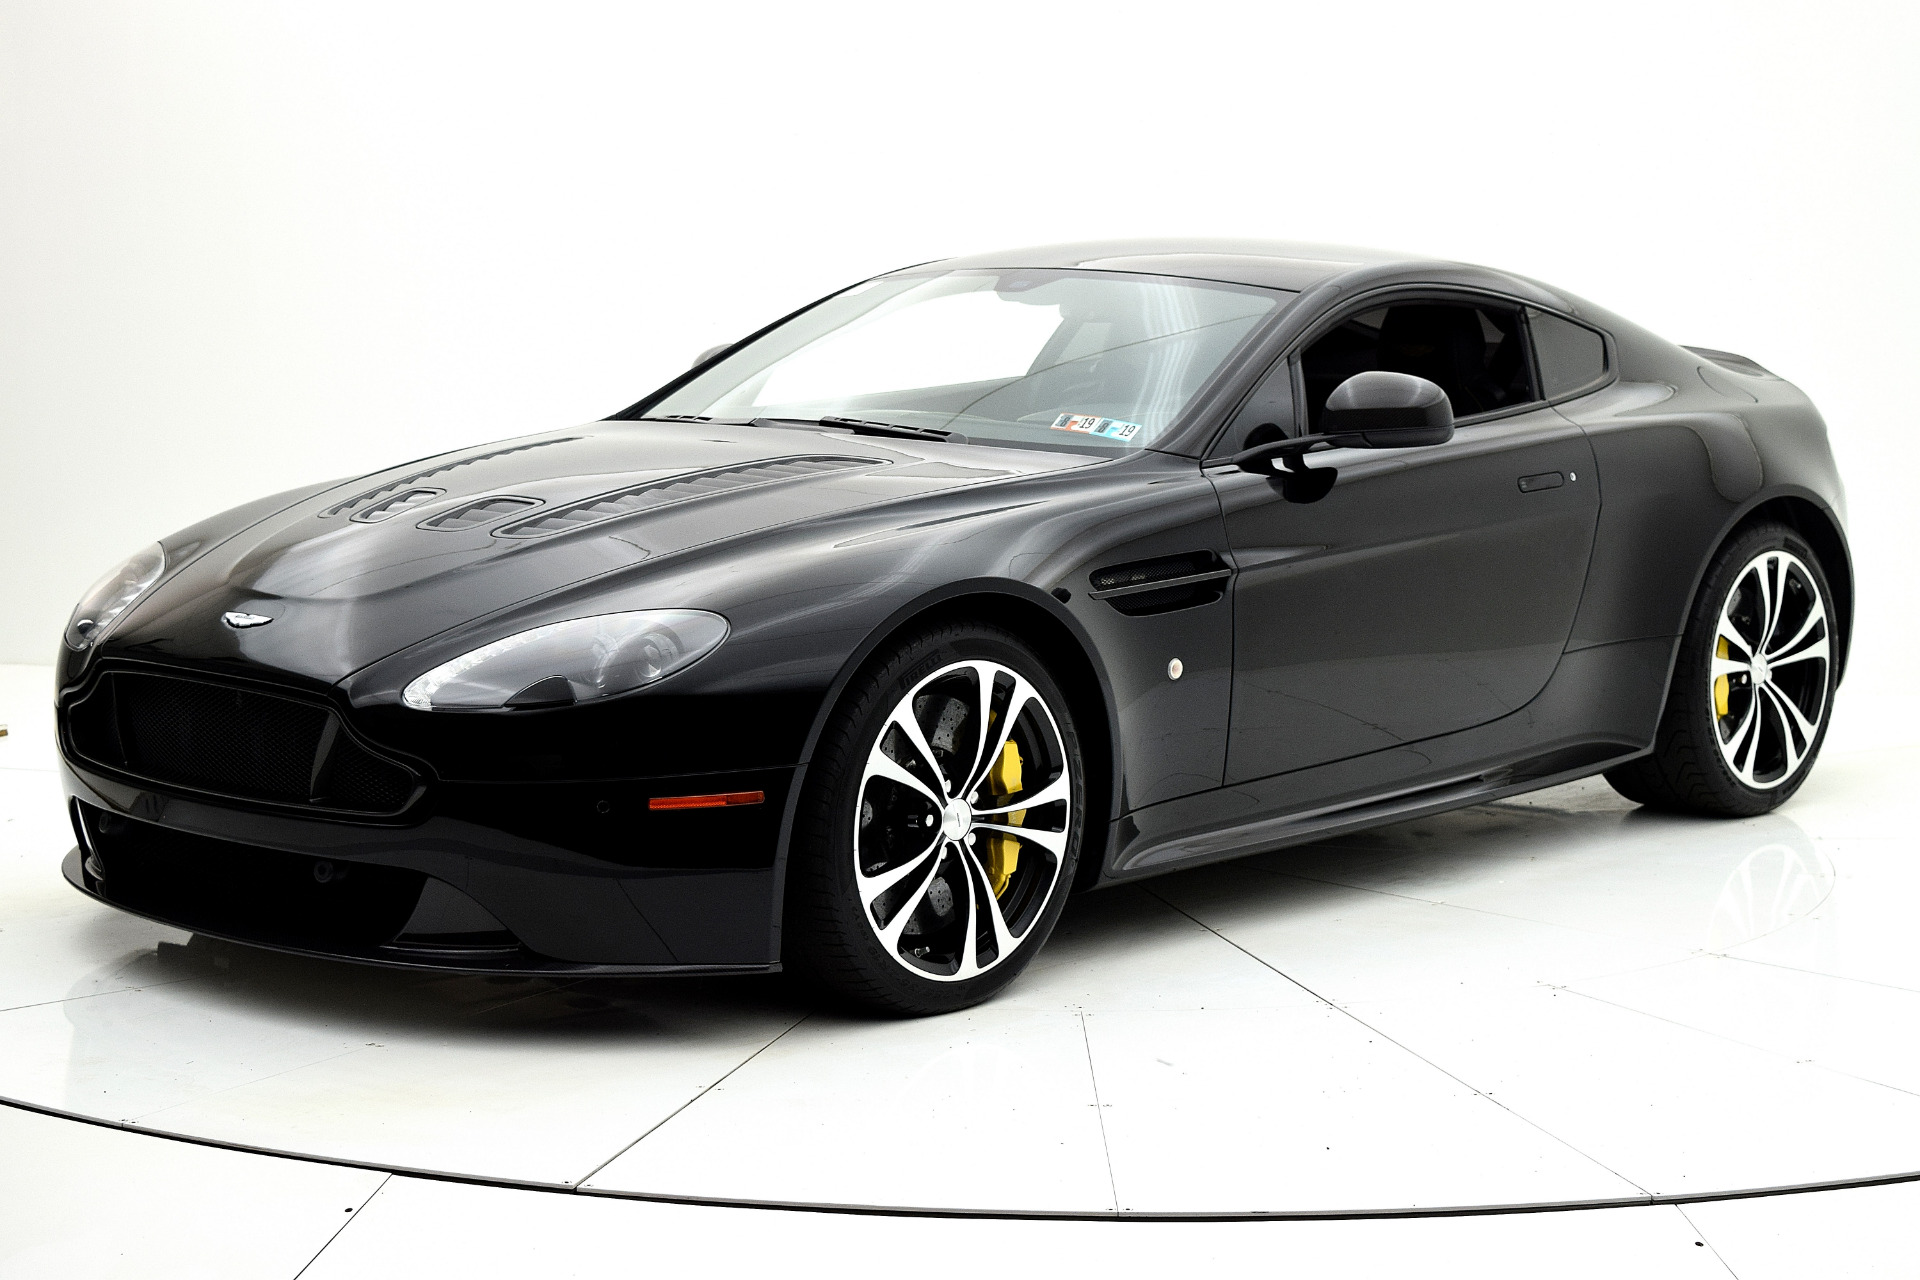 Used 2015 Aston Martin V12 Vantage S Coupe for sale $98,880 at F.C. Kerbeck Aston Martin in Palmyra NJ 08065 2